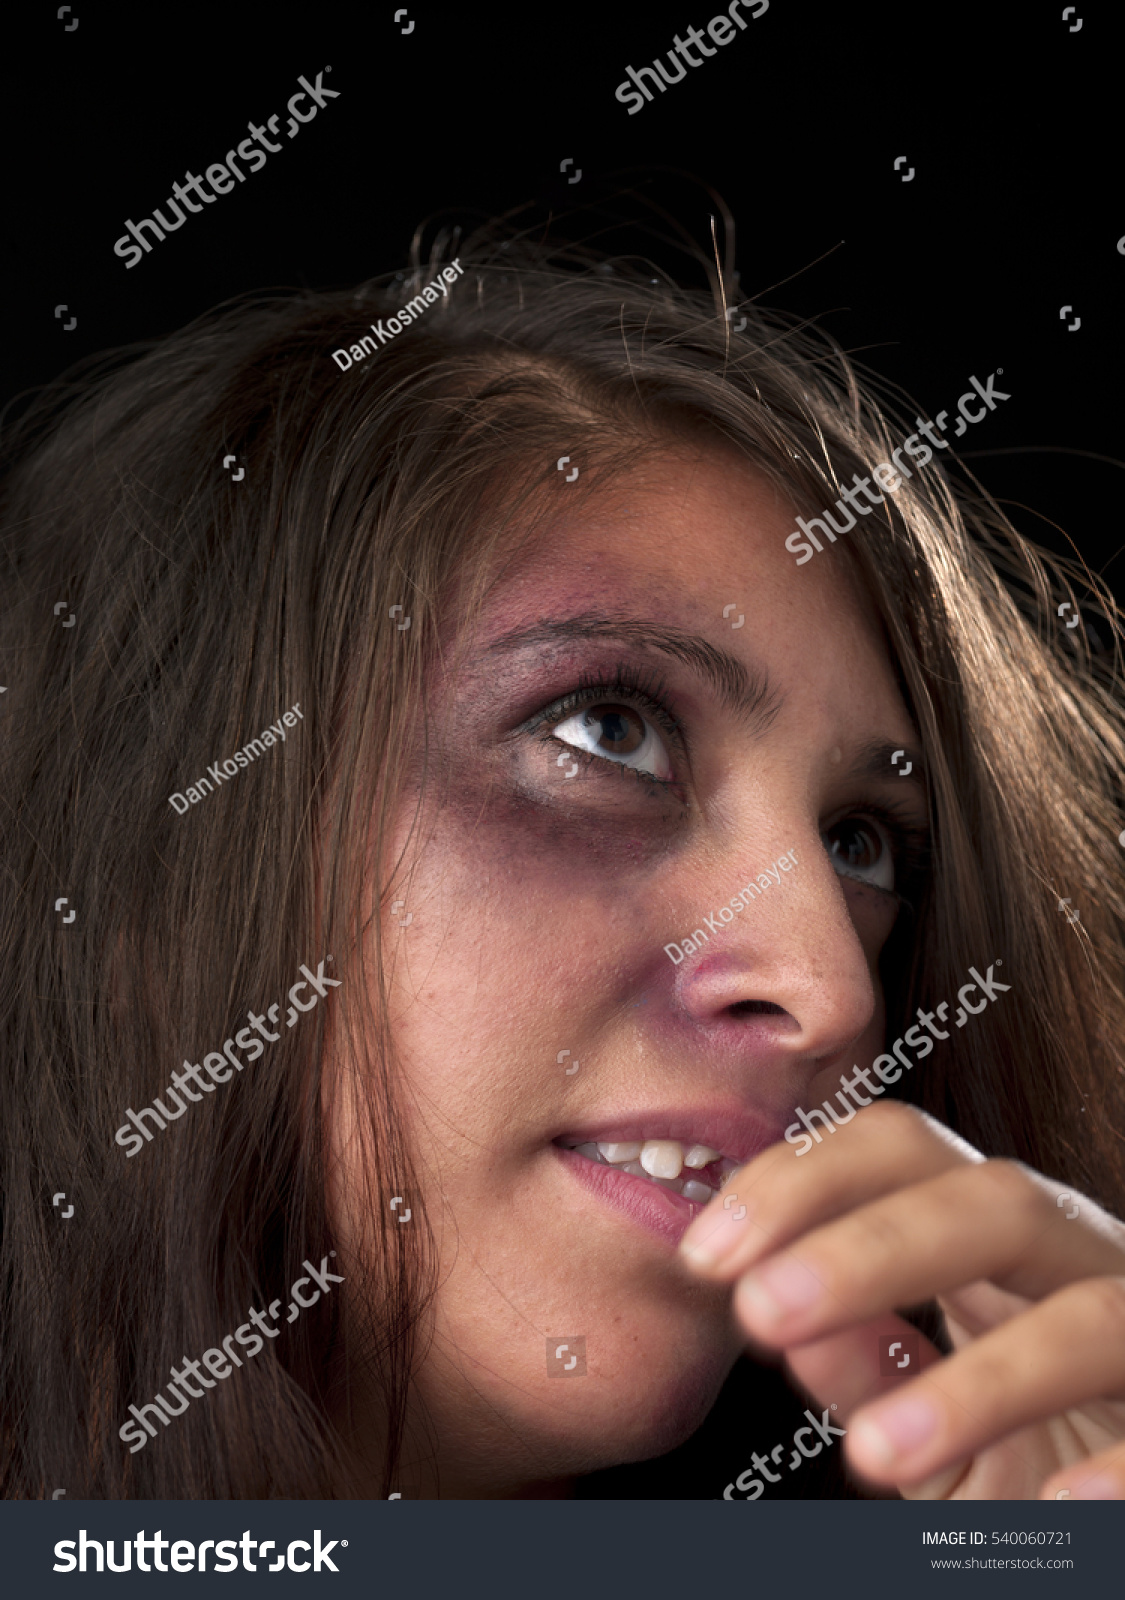 woman body facial injuries which can stock photo 540060721